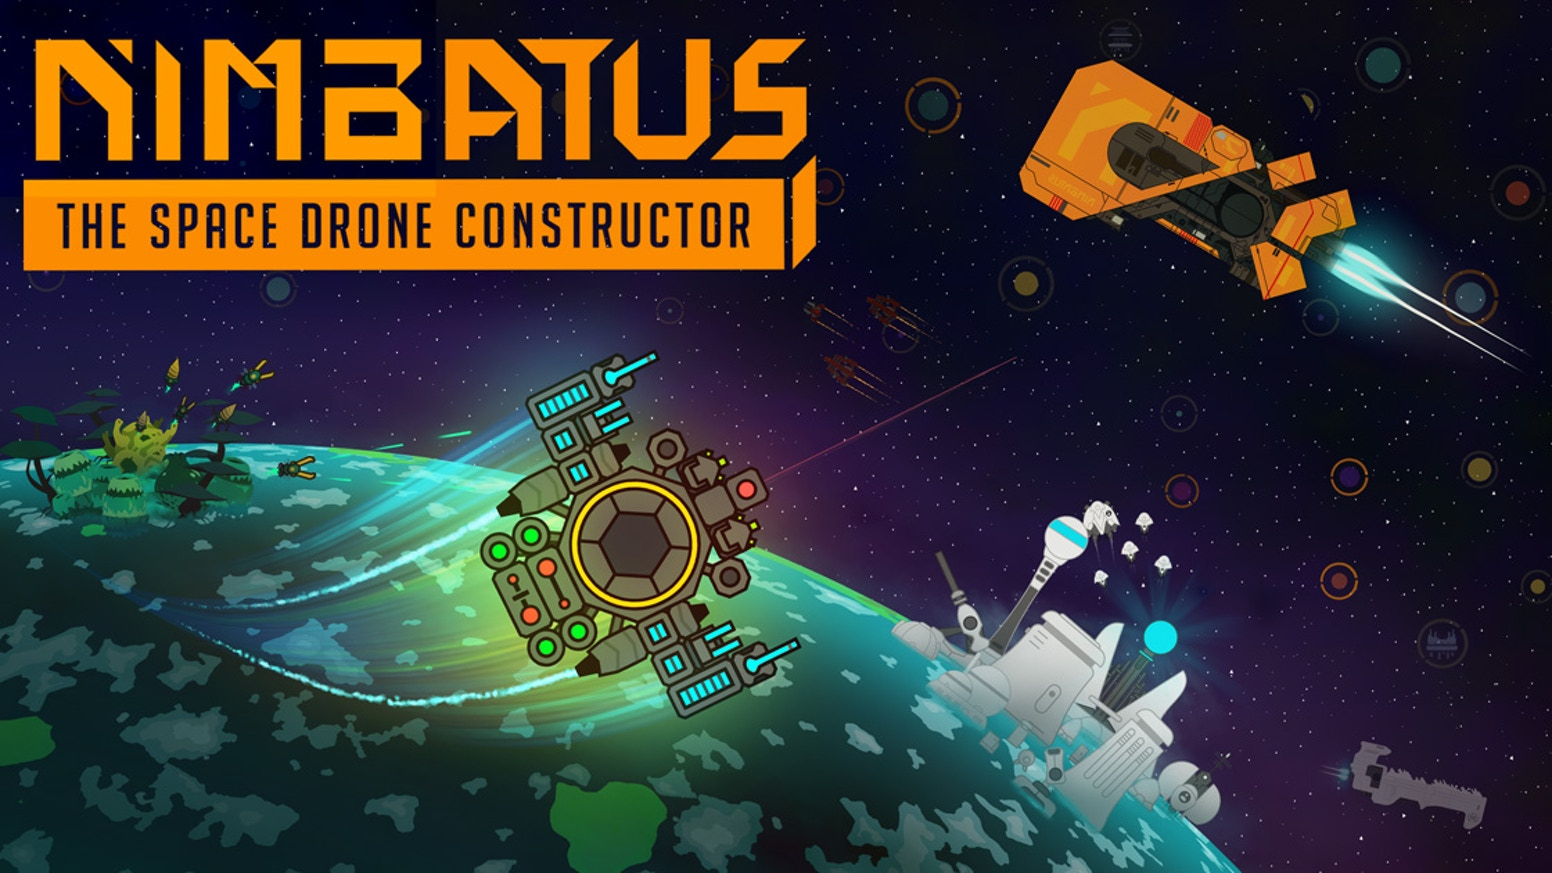 Nimbatus is a procedurally generated action simulation game. Build space drones out of countless parts and explore a huge galaxy.